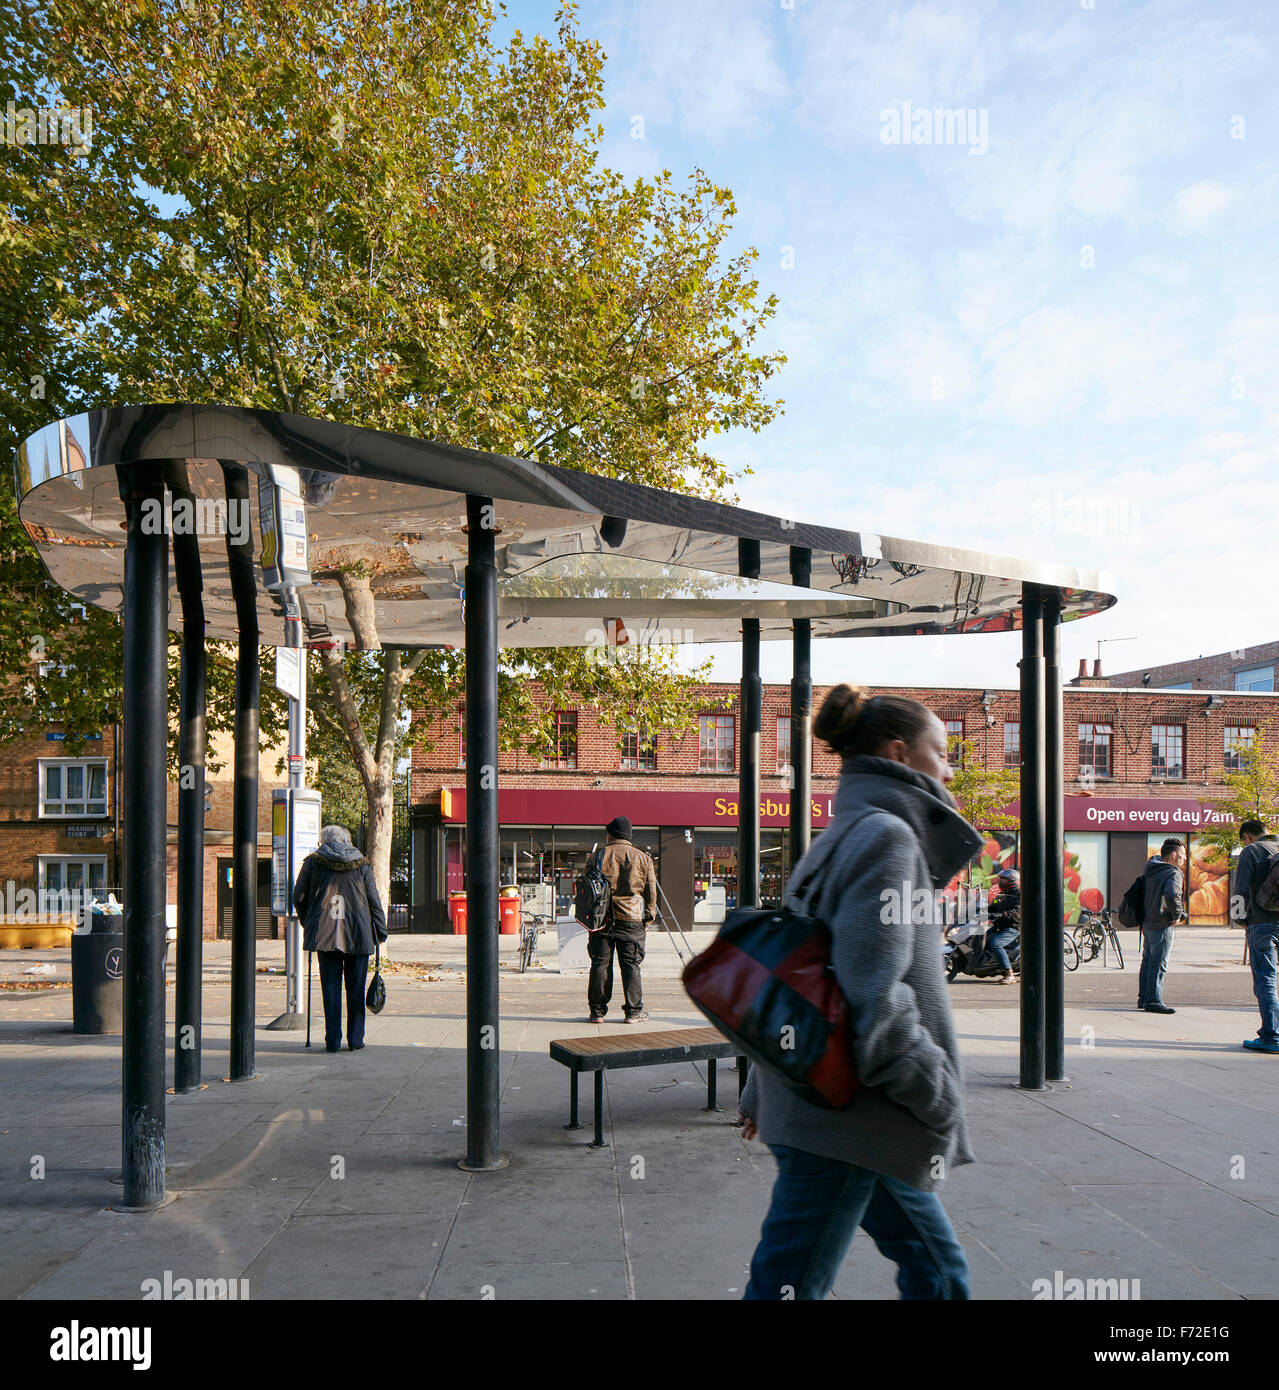 Bus shelter within its context. Binfield Road Bus Shelter, Stockwell Framework Masterplan, London, United Kingdom. - Stock Image